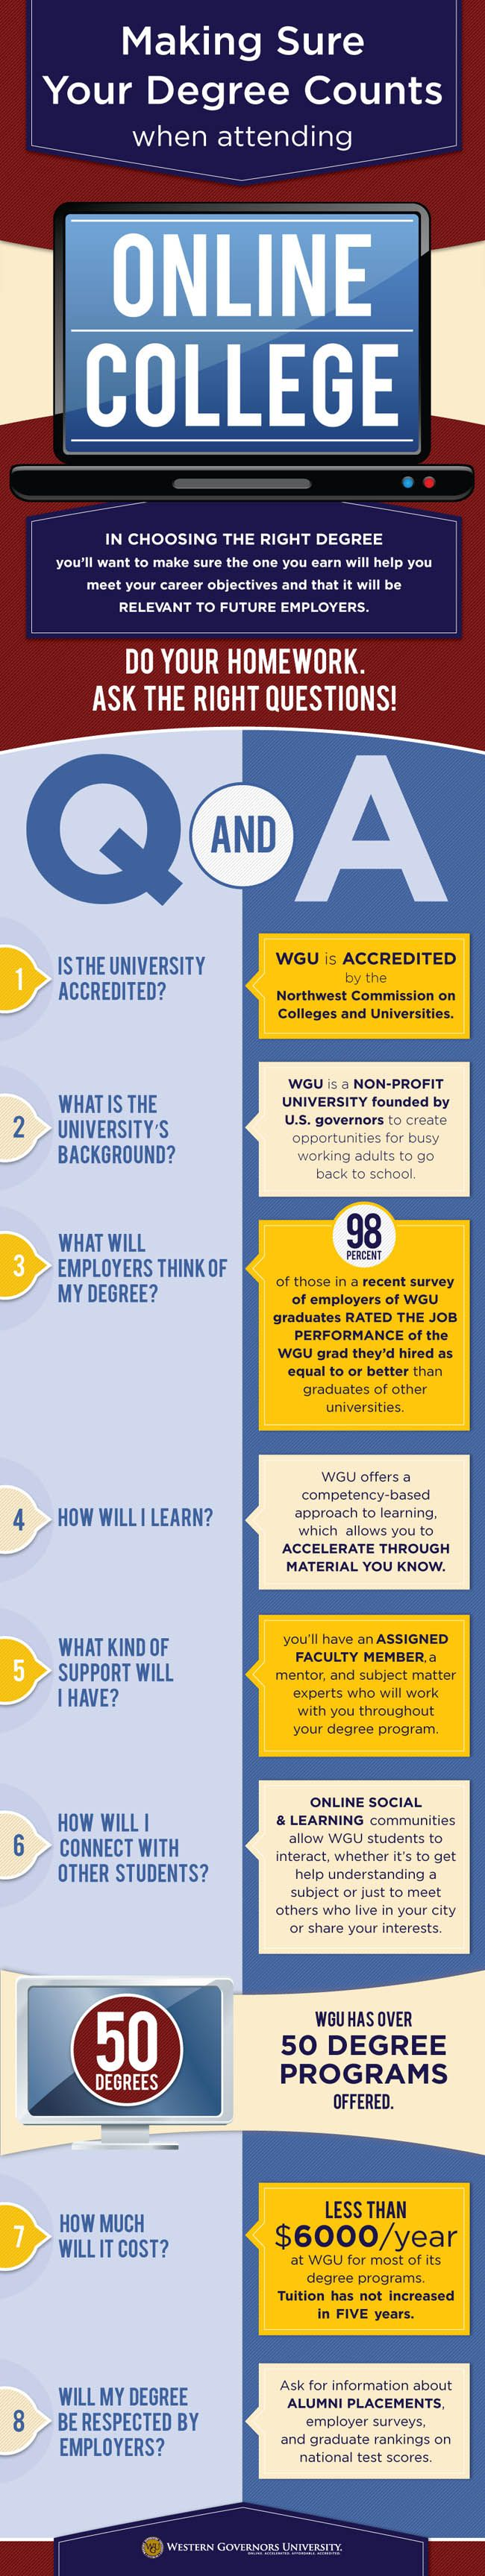 Alumni want to order a duplicate diploma that says thomas edison - Making Sure Your Degree Degree Counts Infographic